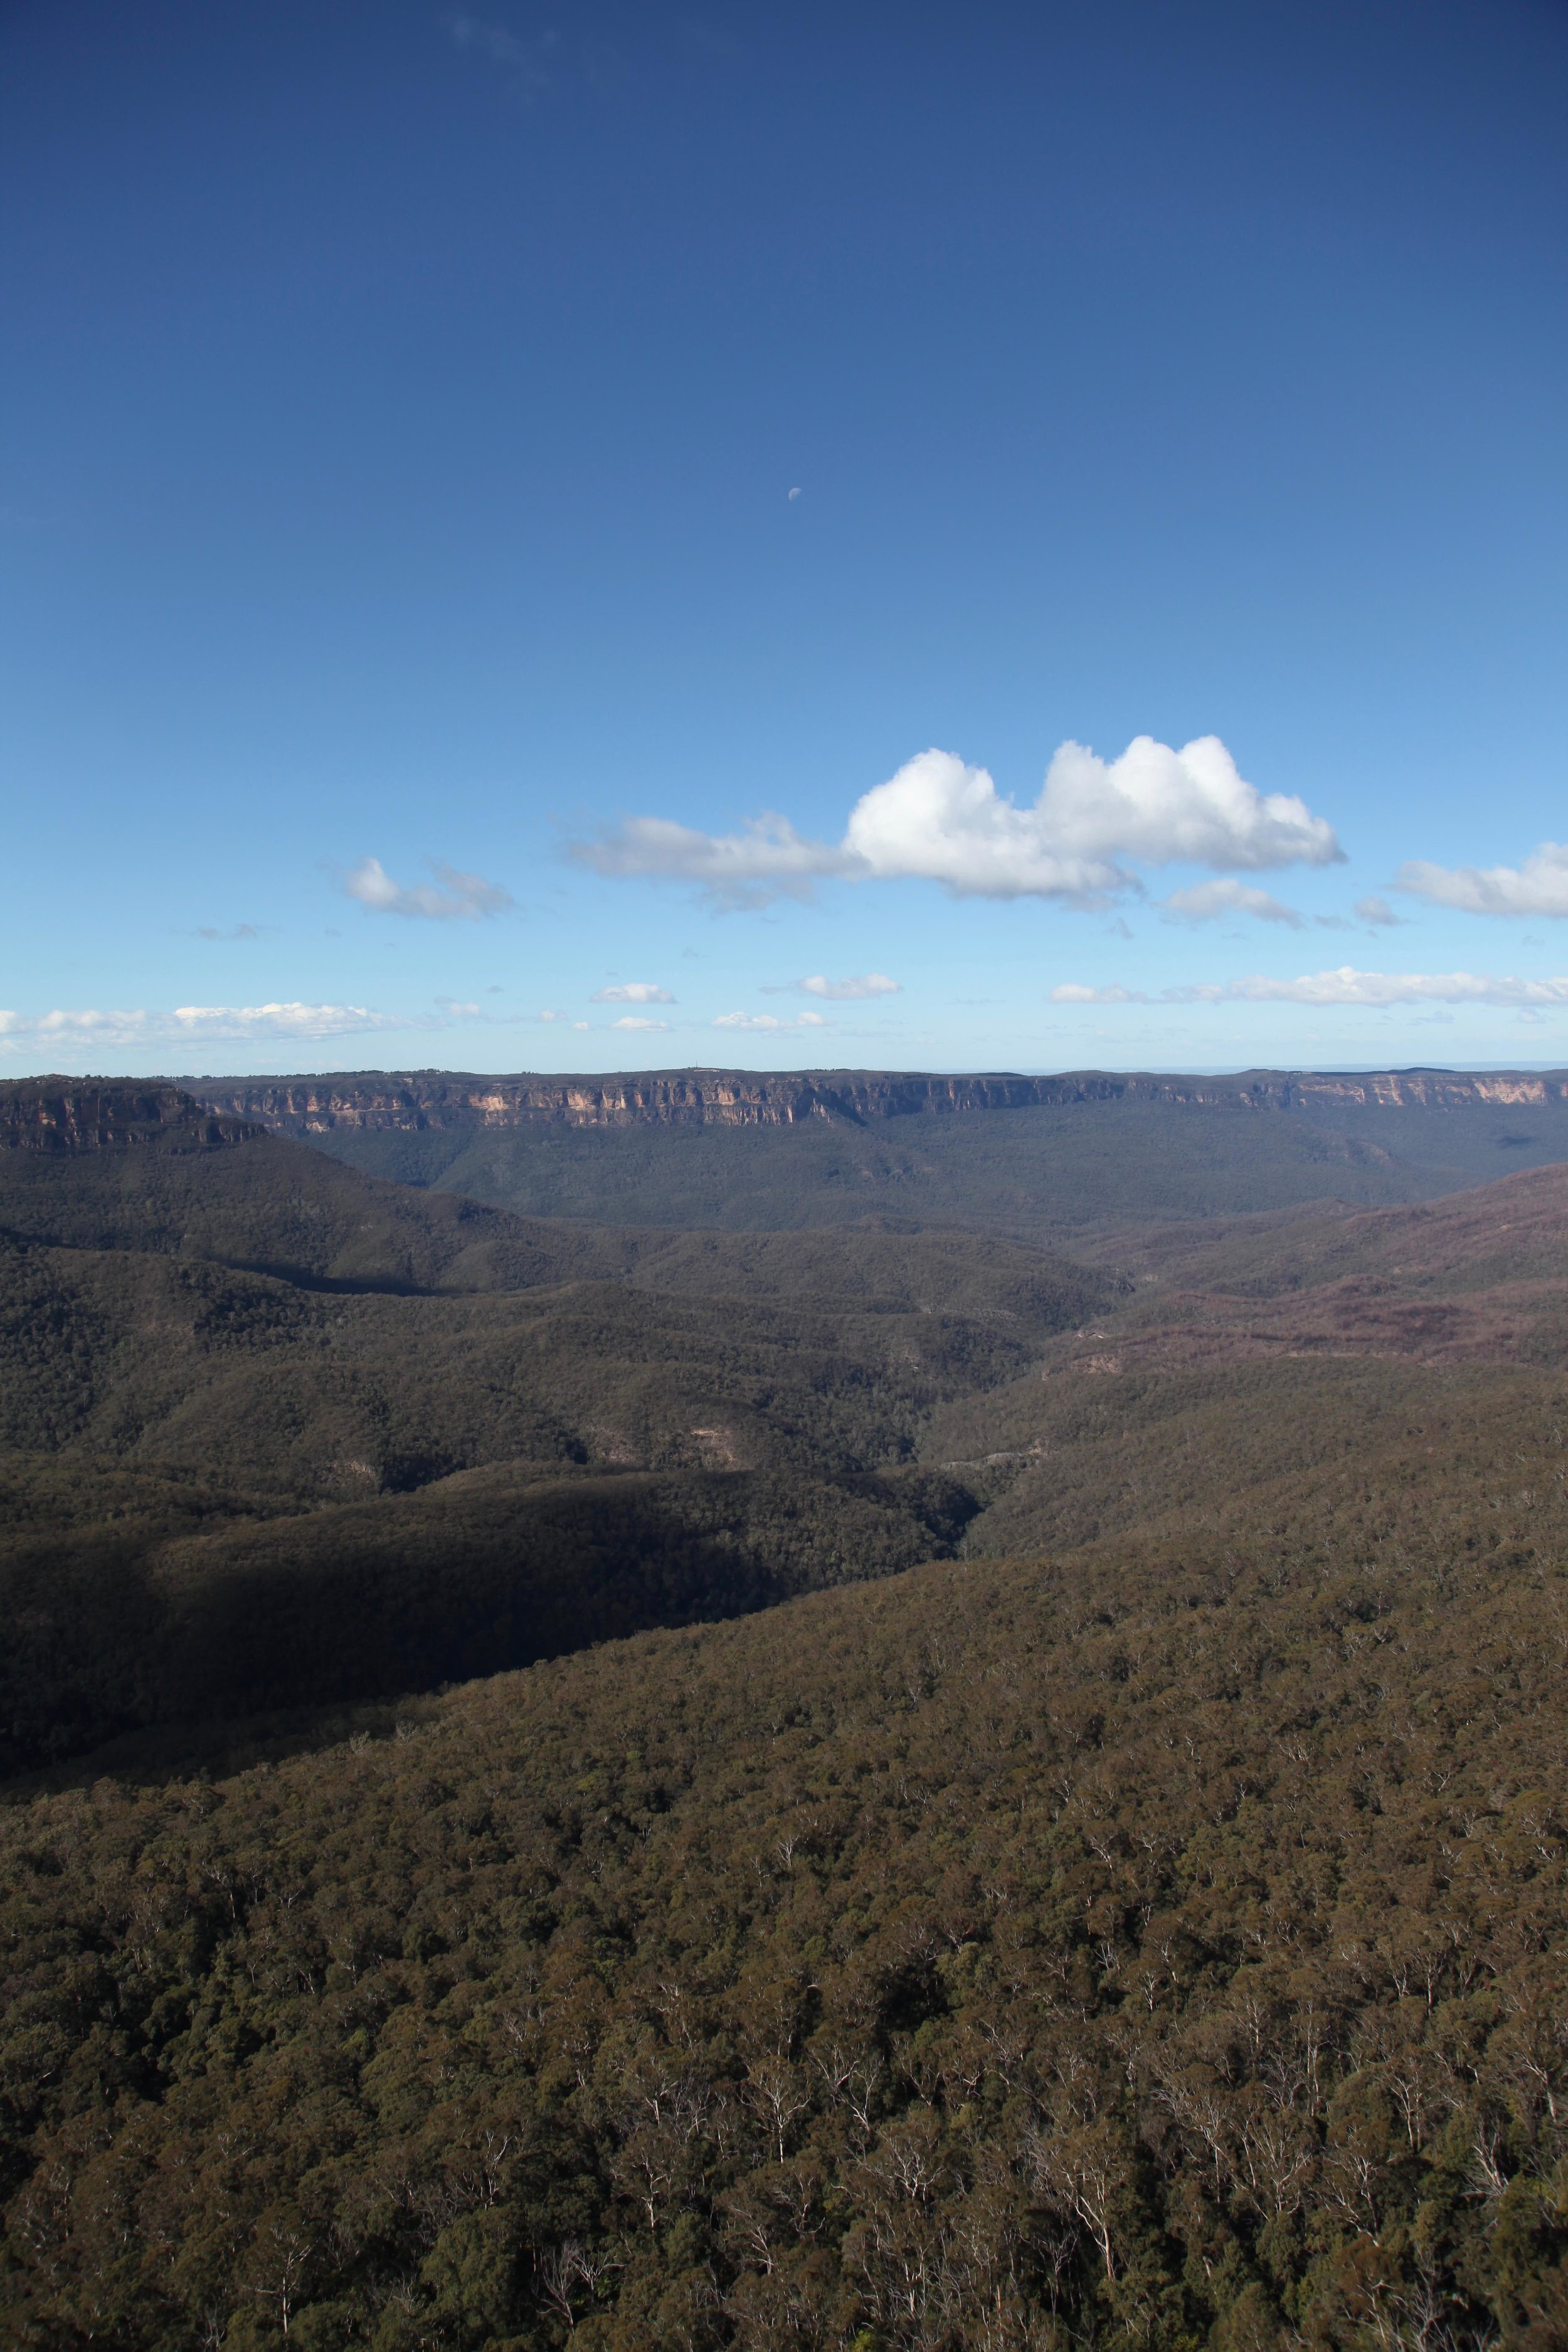 The Jamison Valley at Katoomba in the Blue Mountains.